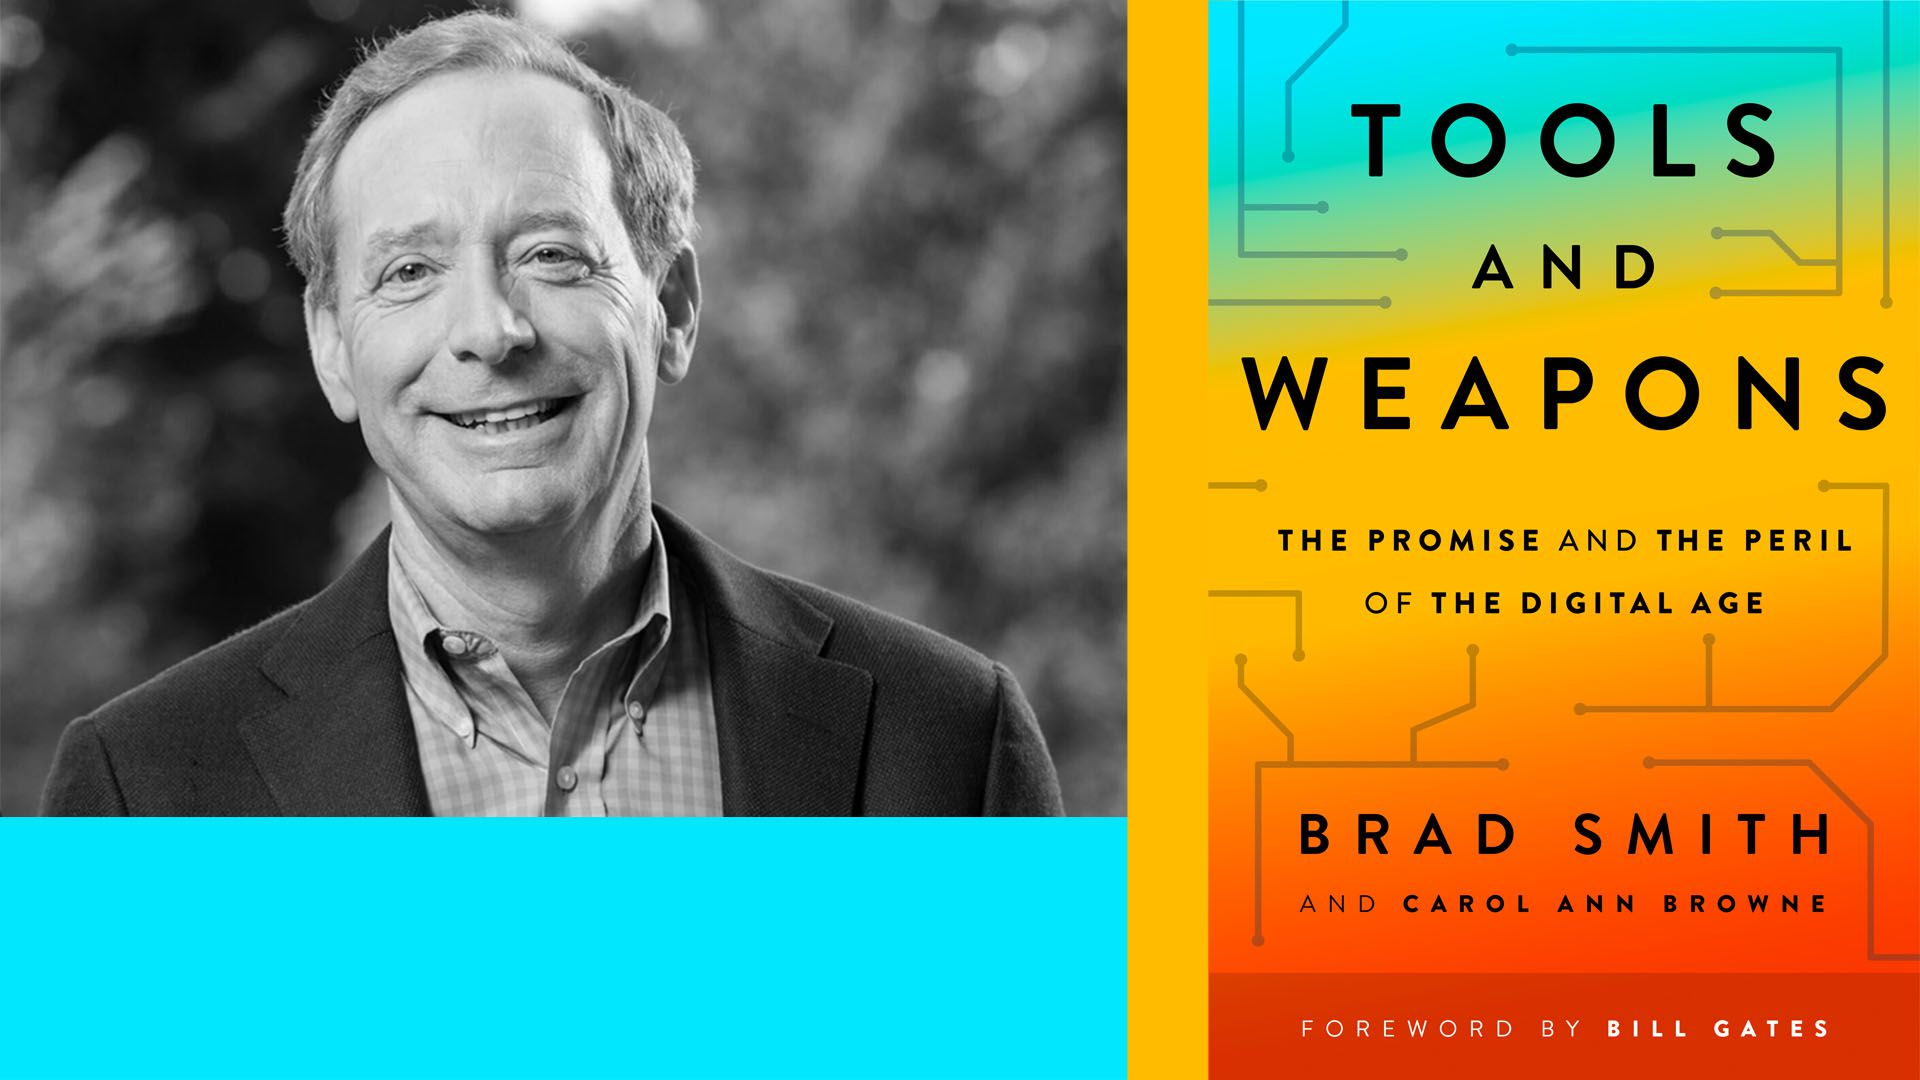 Photo collage of Brad smith and his book, Tools and Weapons